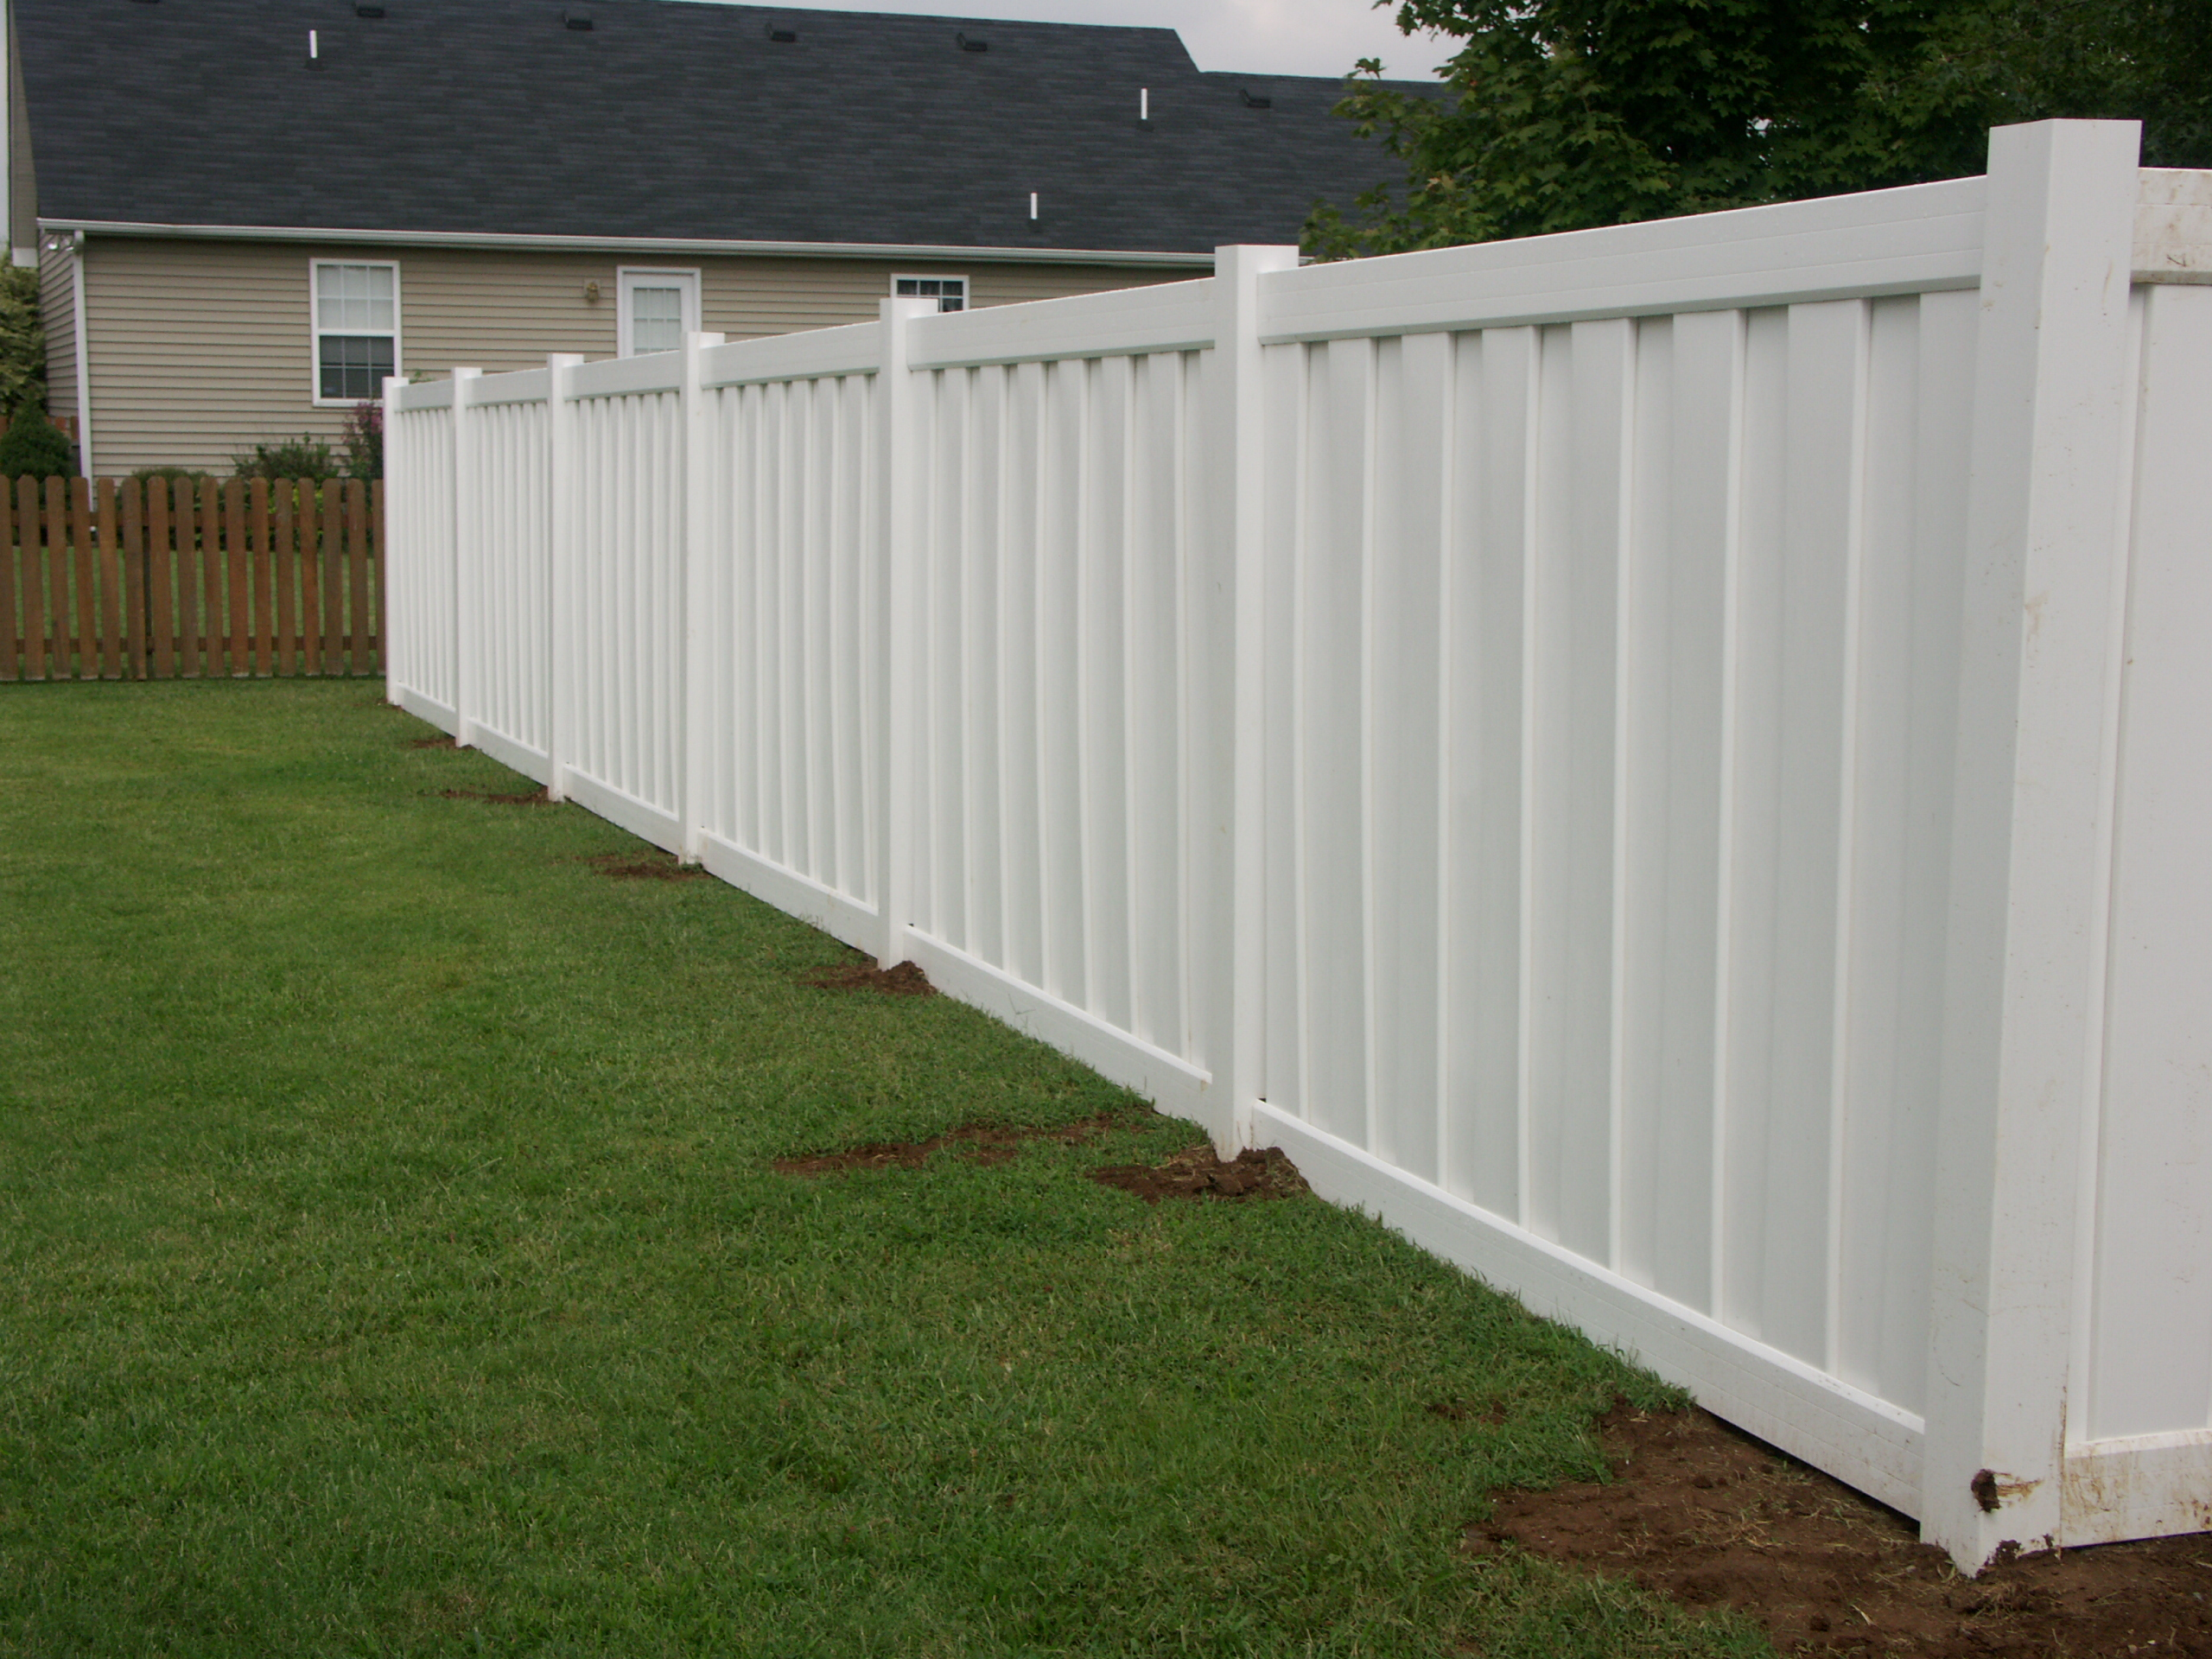 3 Vinyl Fencing Unlimited Fencing